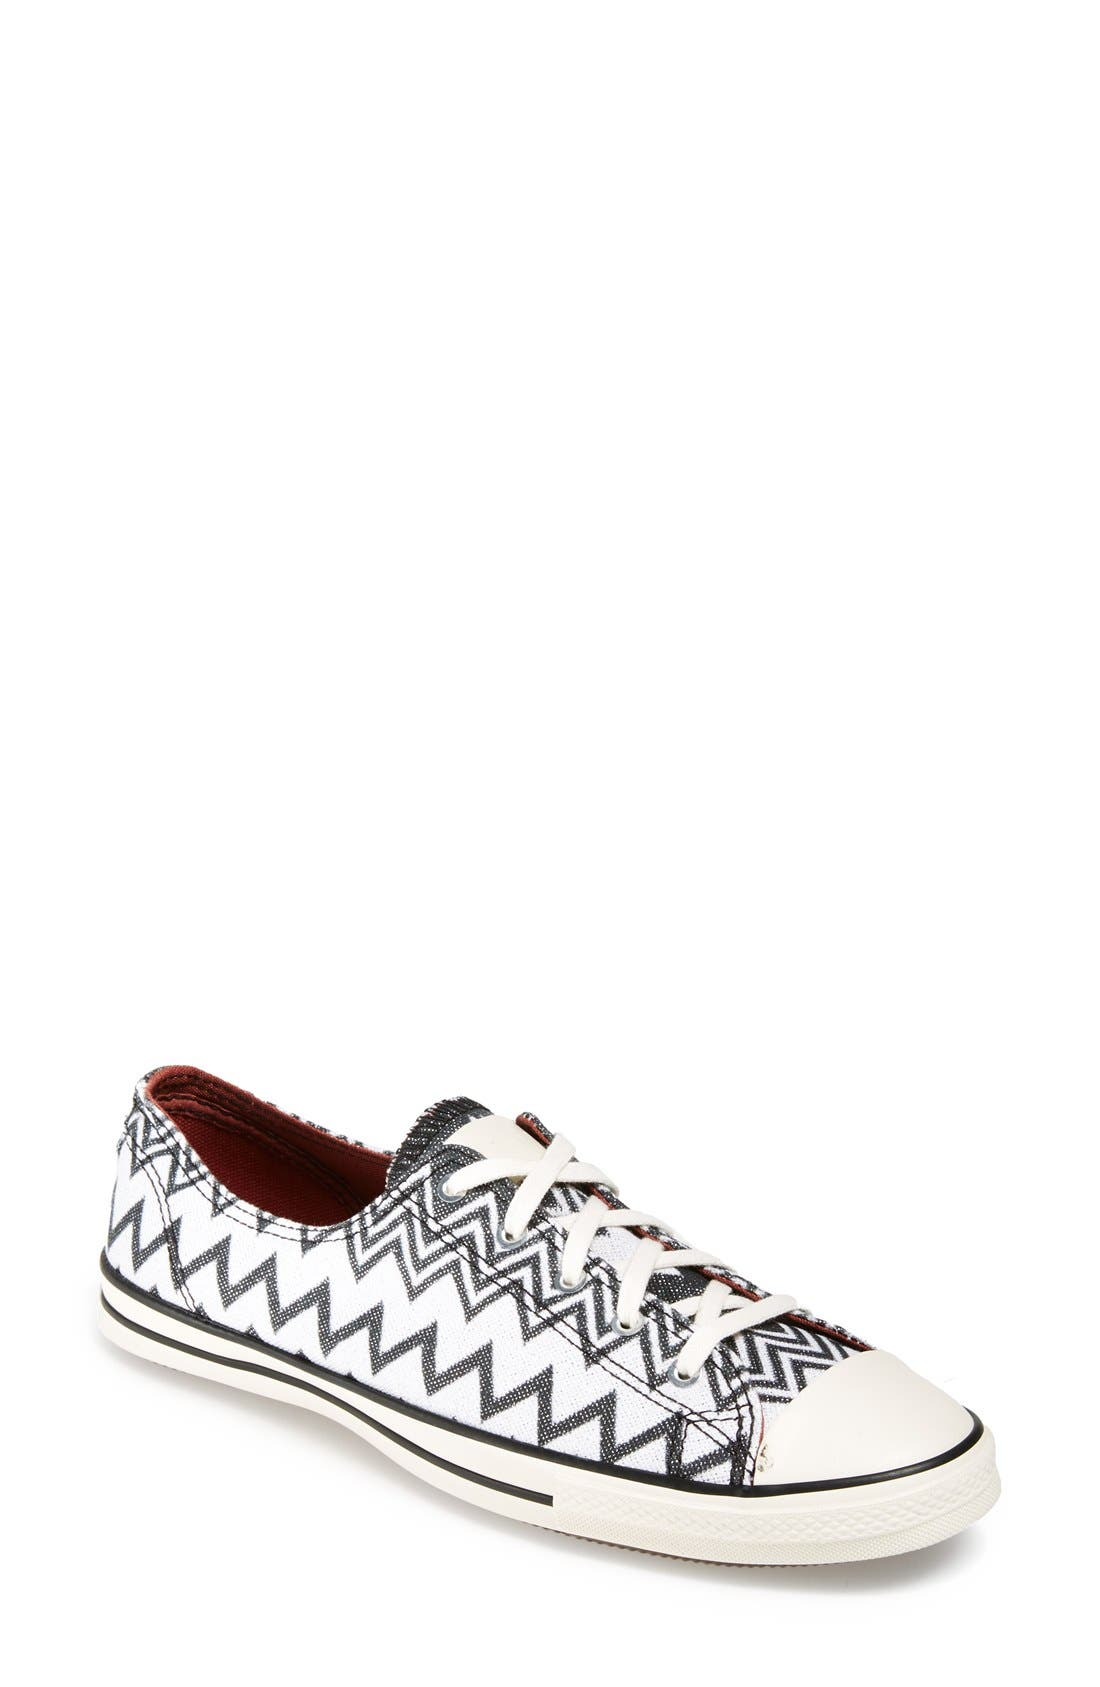 x Missoni Chuck Taylor<sup>®</sup> All Star<sup>®</sup> 'Fancy' Ox Sneaker,                         Main,                         color,